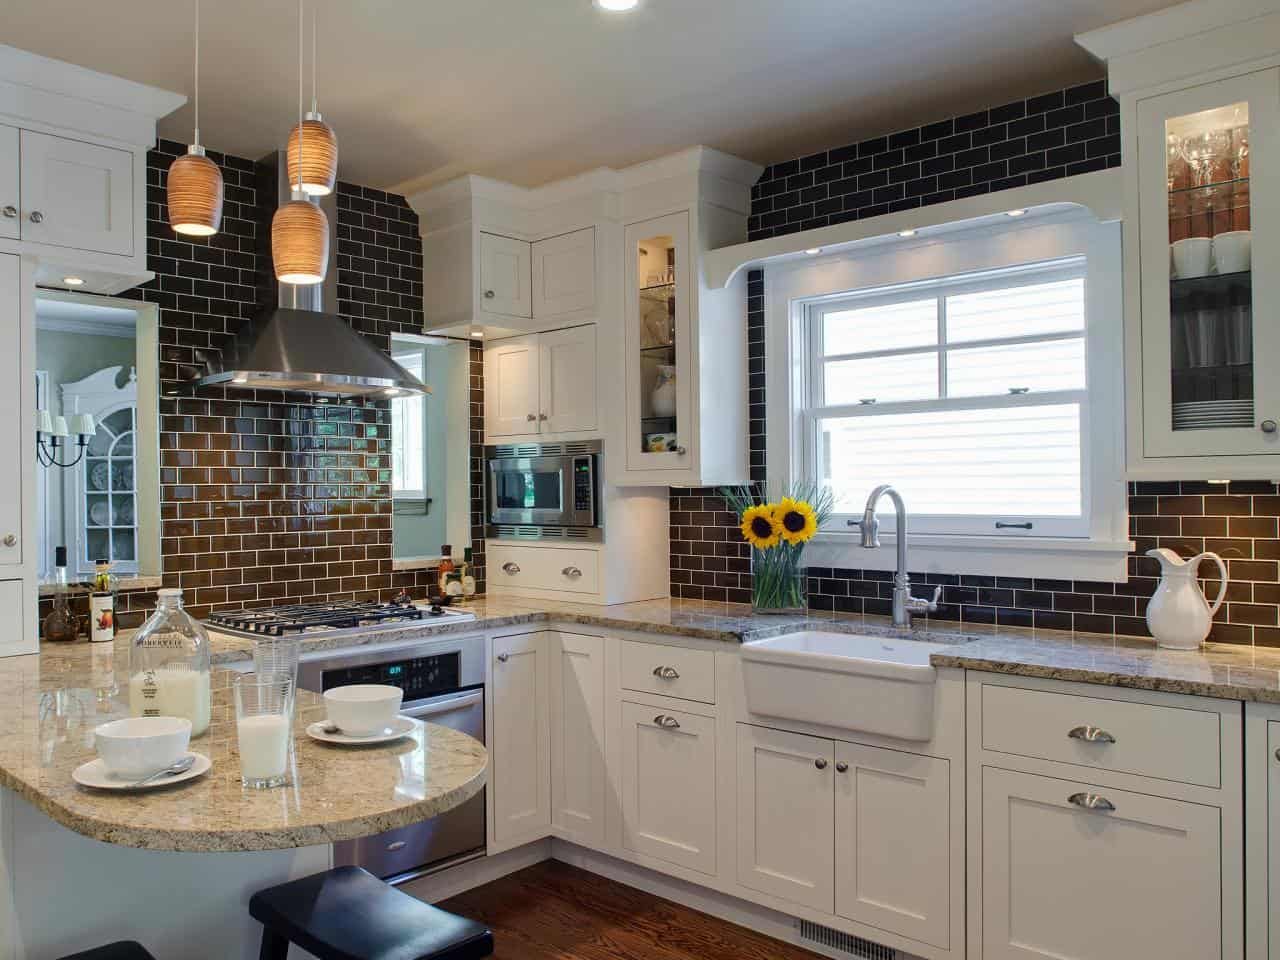 black kitchen tiles ideas 11 kitchen backsplash ideas you should consider 16434